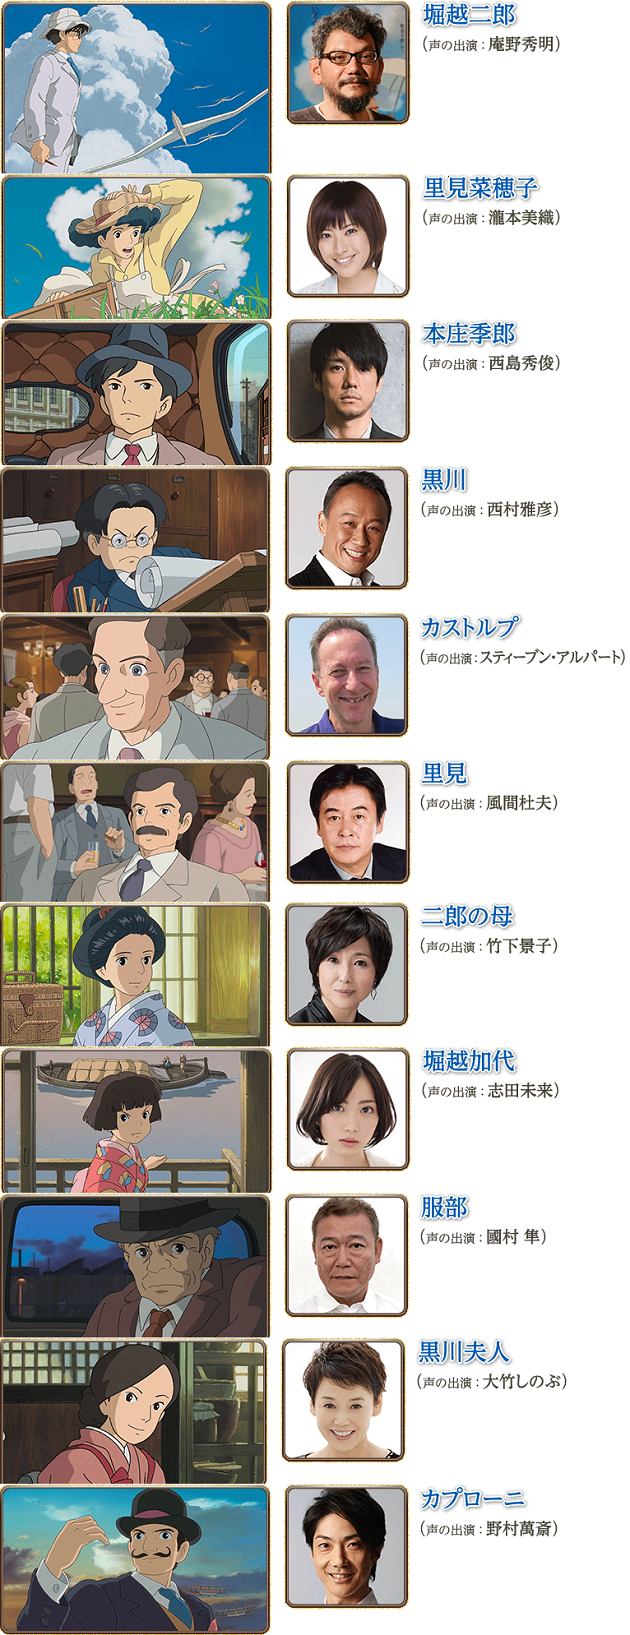 New Character Images From Miyazaki Hayao S The Wind Rises